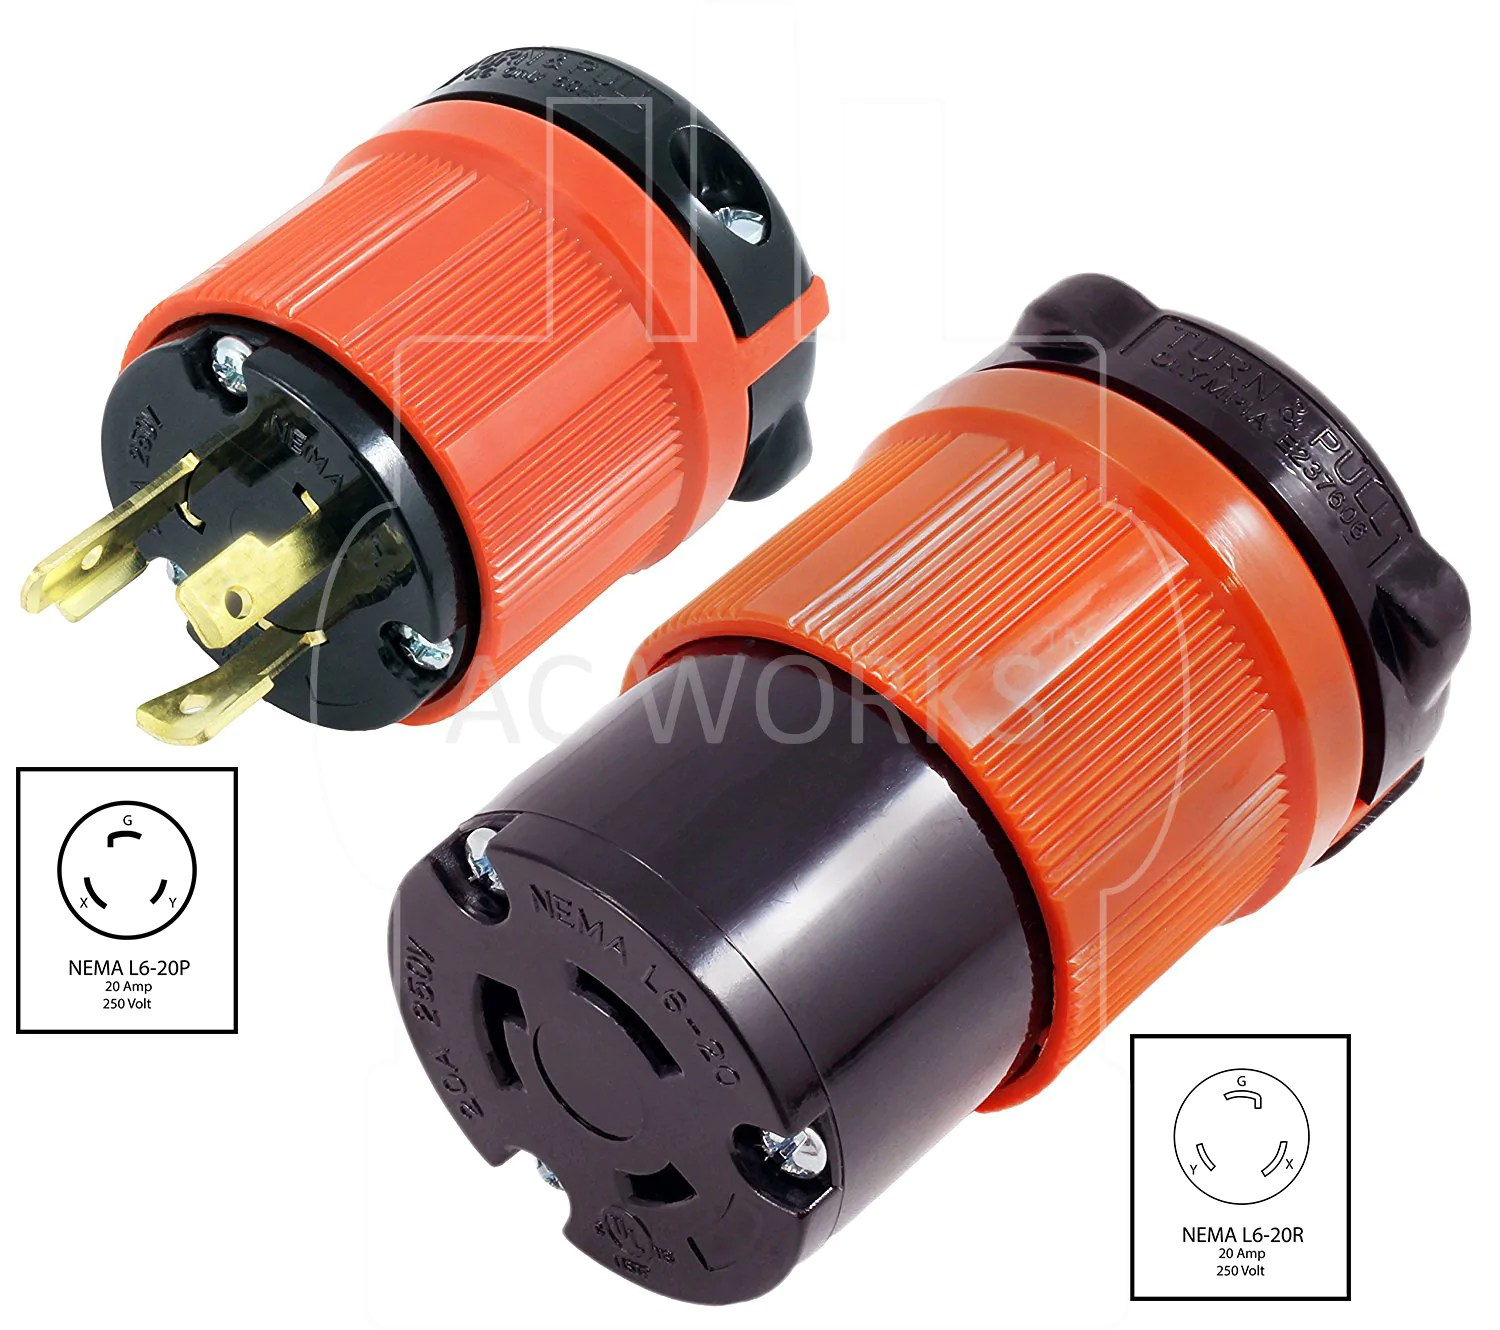 hight resolution of  ac works ac connectors nema l6 20p l620p l620 3